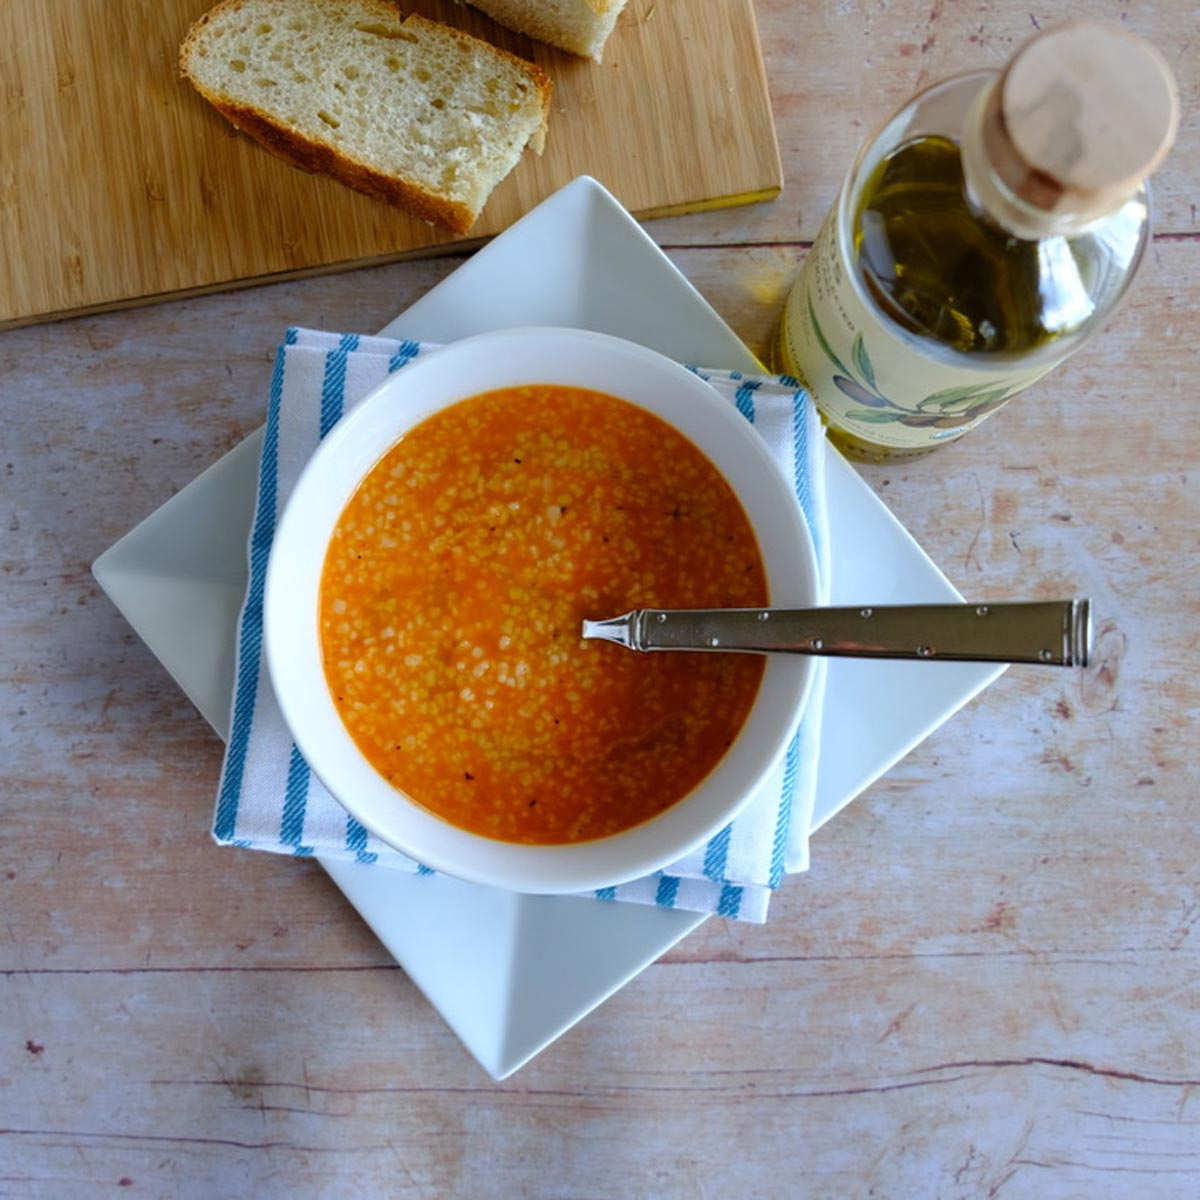 Easy night soup meal kit, a healthy meal with spicy Greek trahana soup, all-natural veggie spread and spices with orange zest